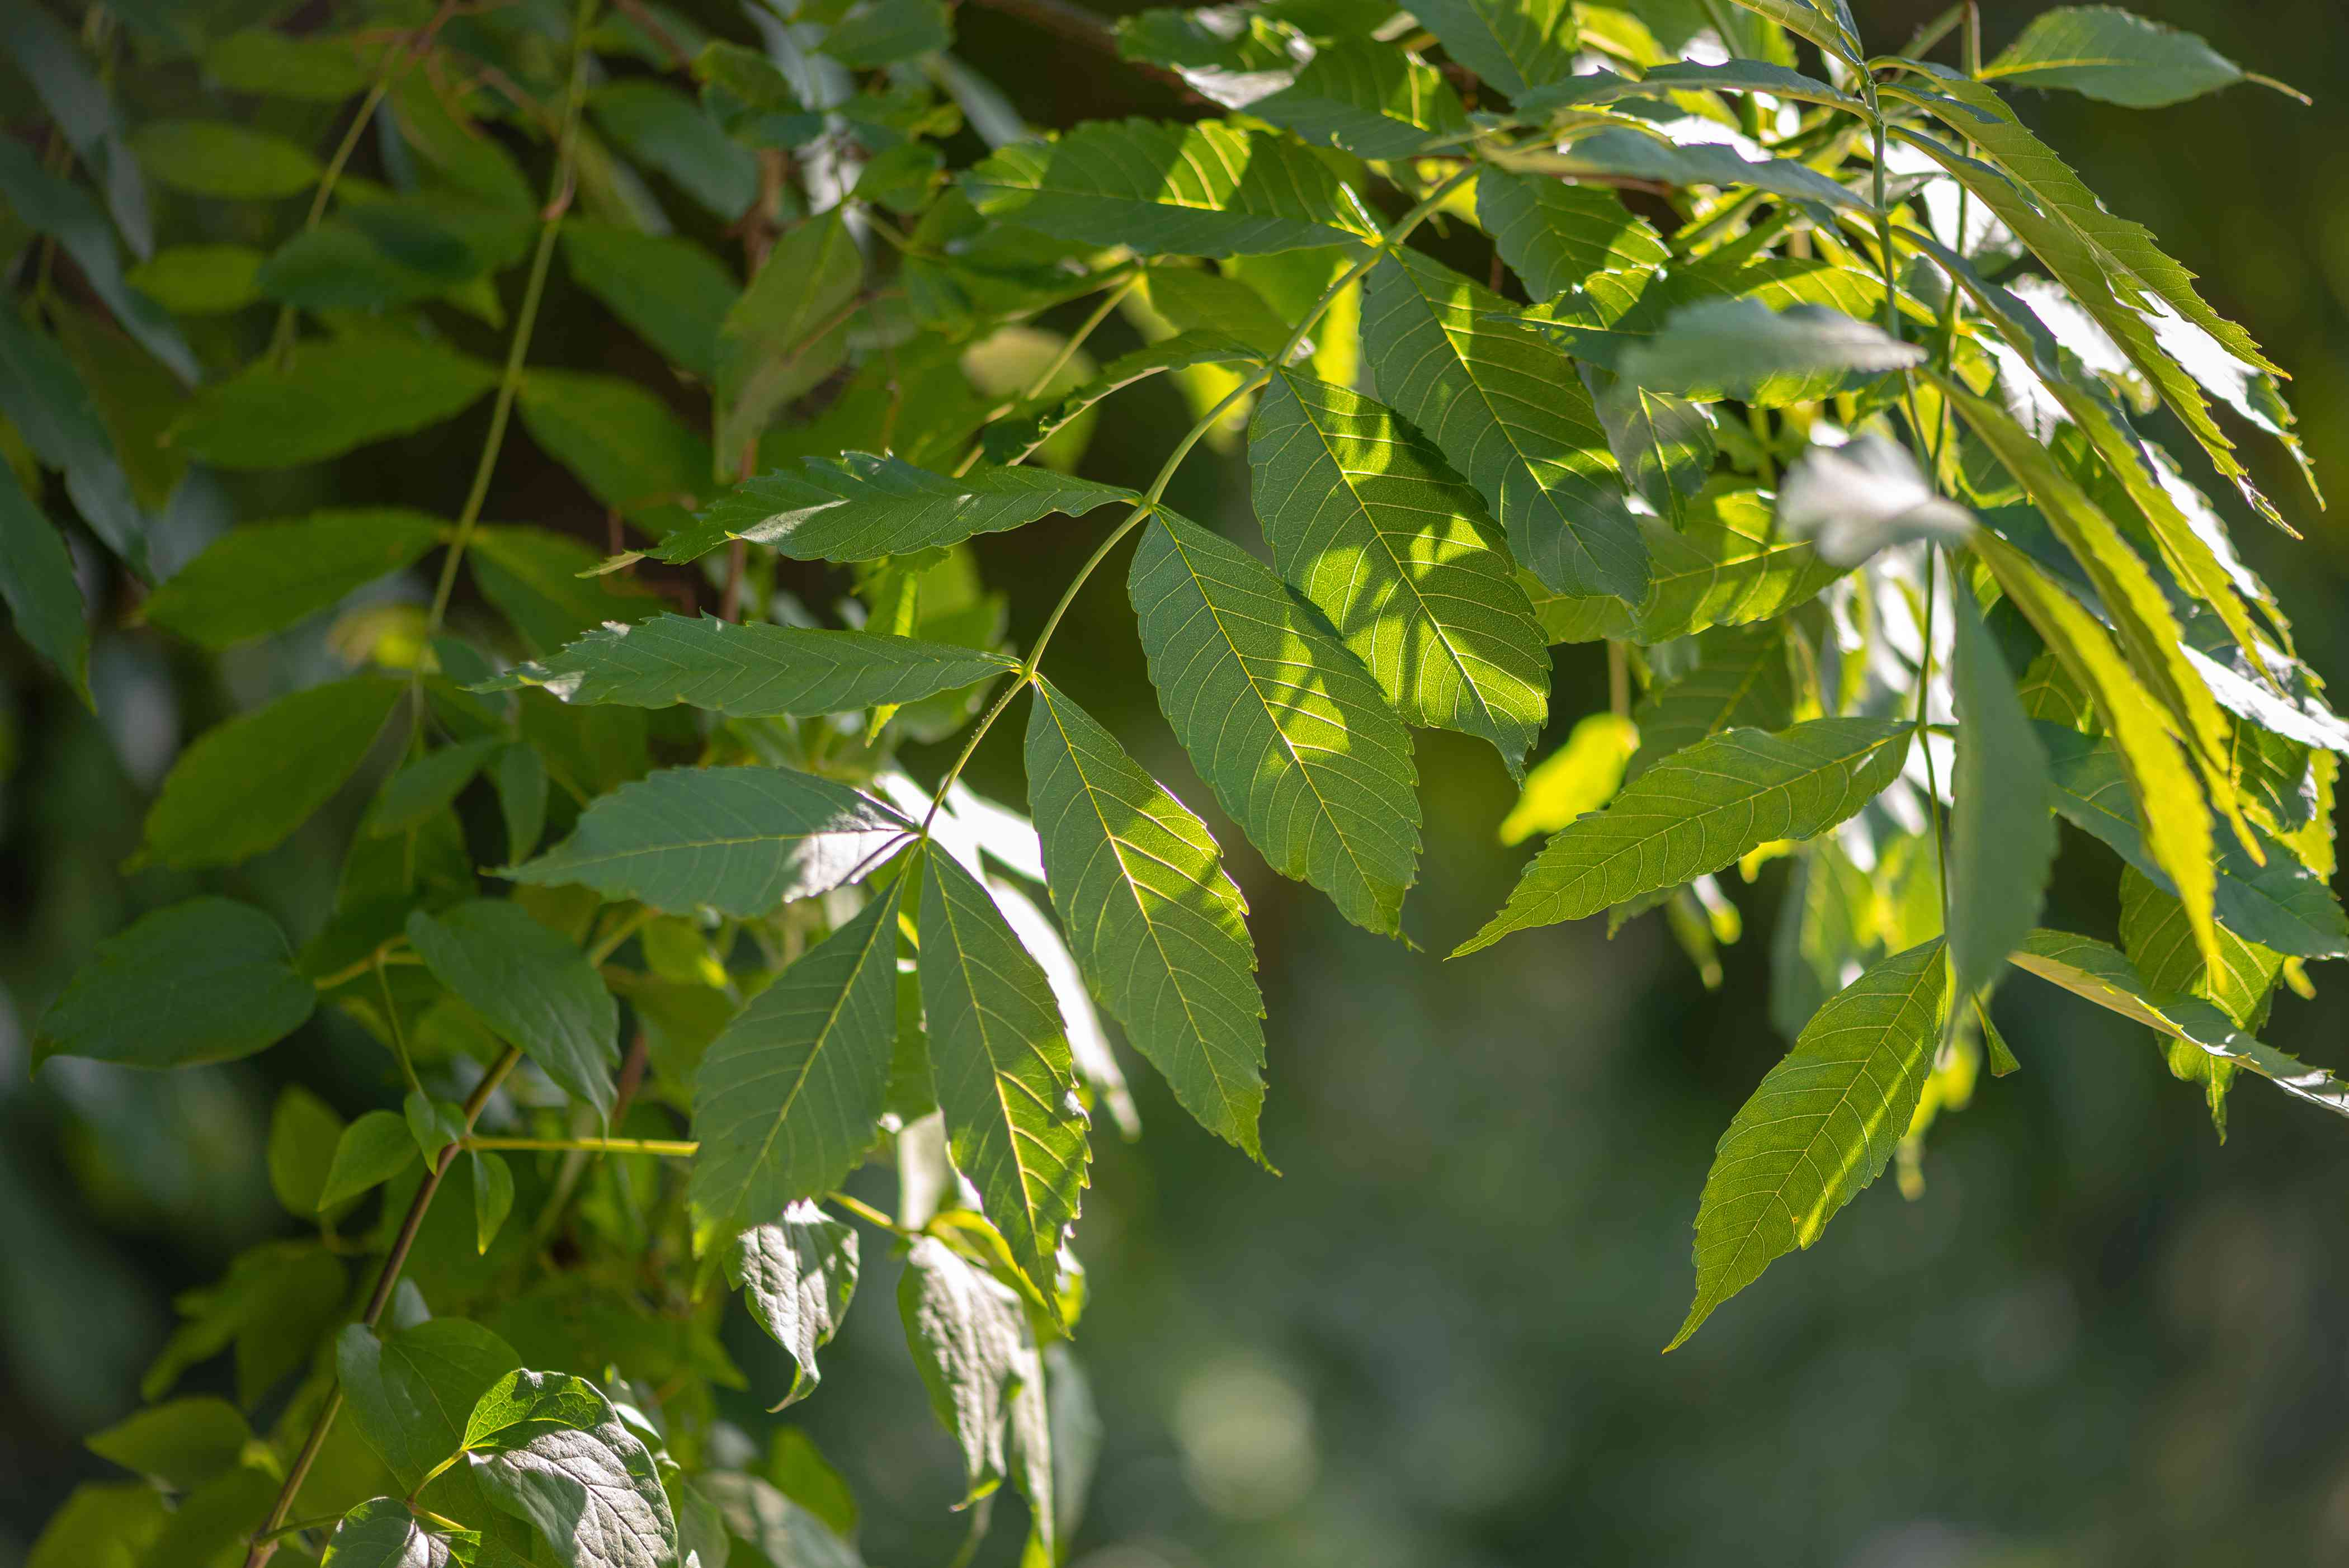 European ash tree branch with veined leaves in partial sunlight